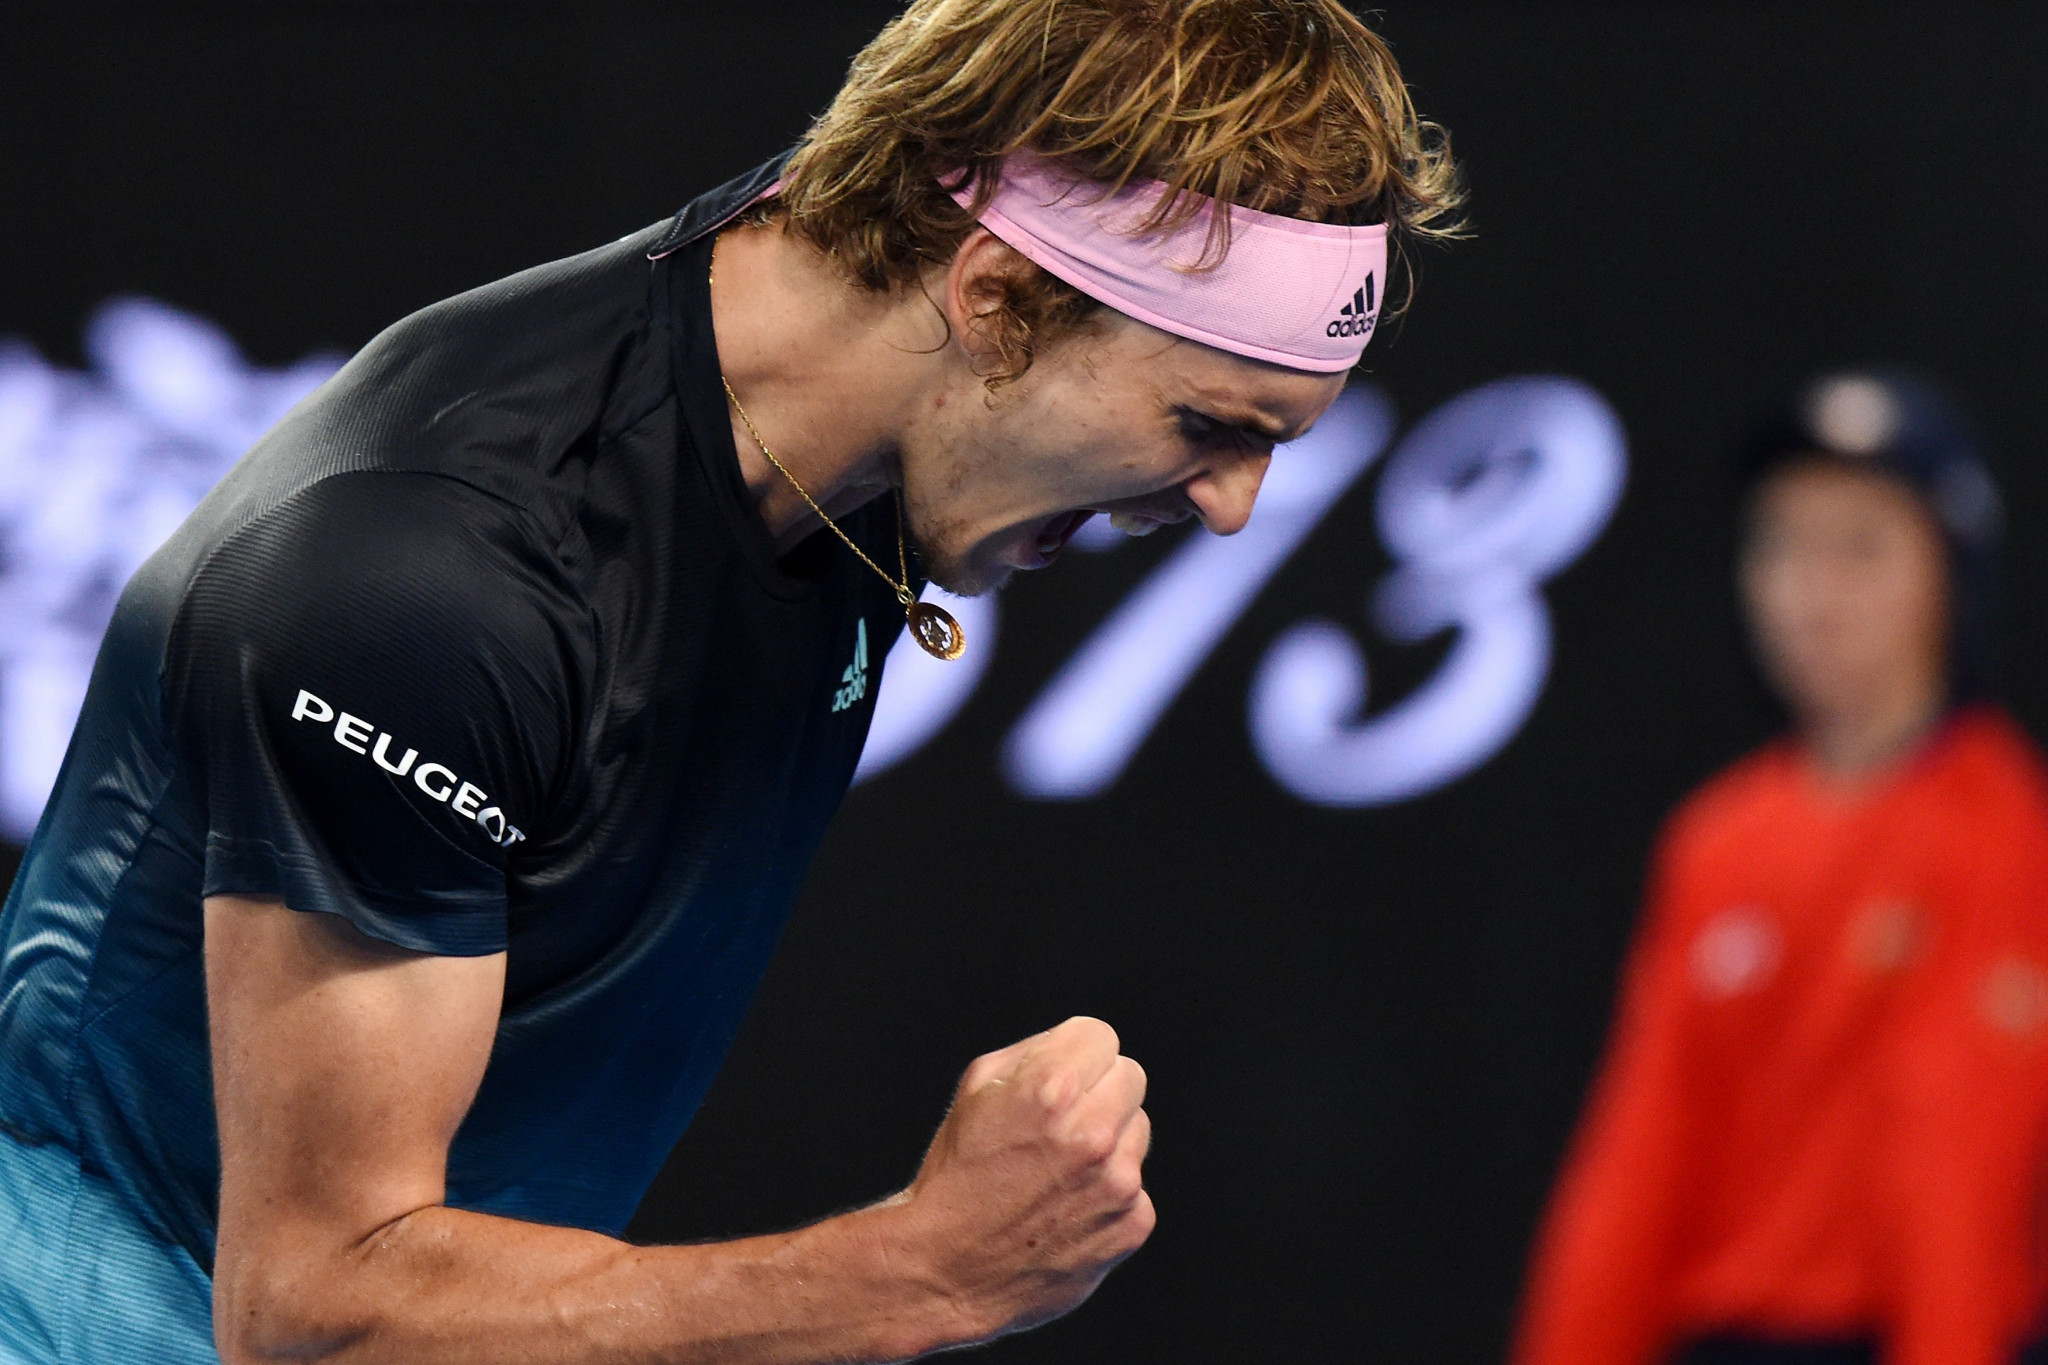 Germany's Alexander Zverev battled to a five-set win over Frenchman Jeremy Chardy ©Getty Images